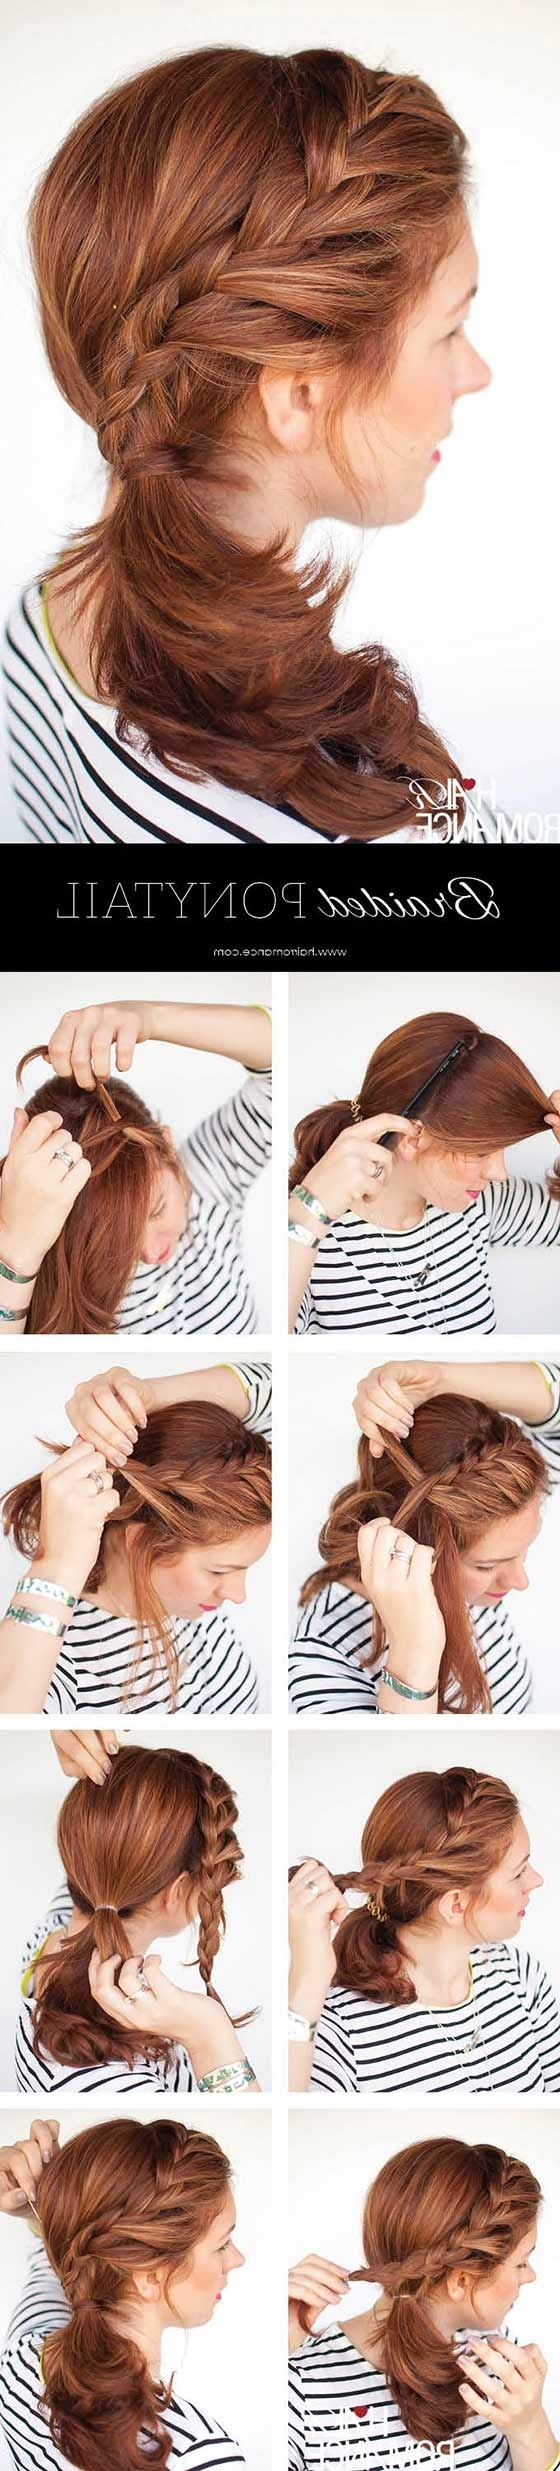 40 Braided Hairstyles For Long Hair Pertaining To Popular Braided Crown Pony Hairstyles (View 3 of 20)